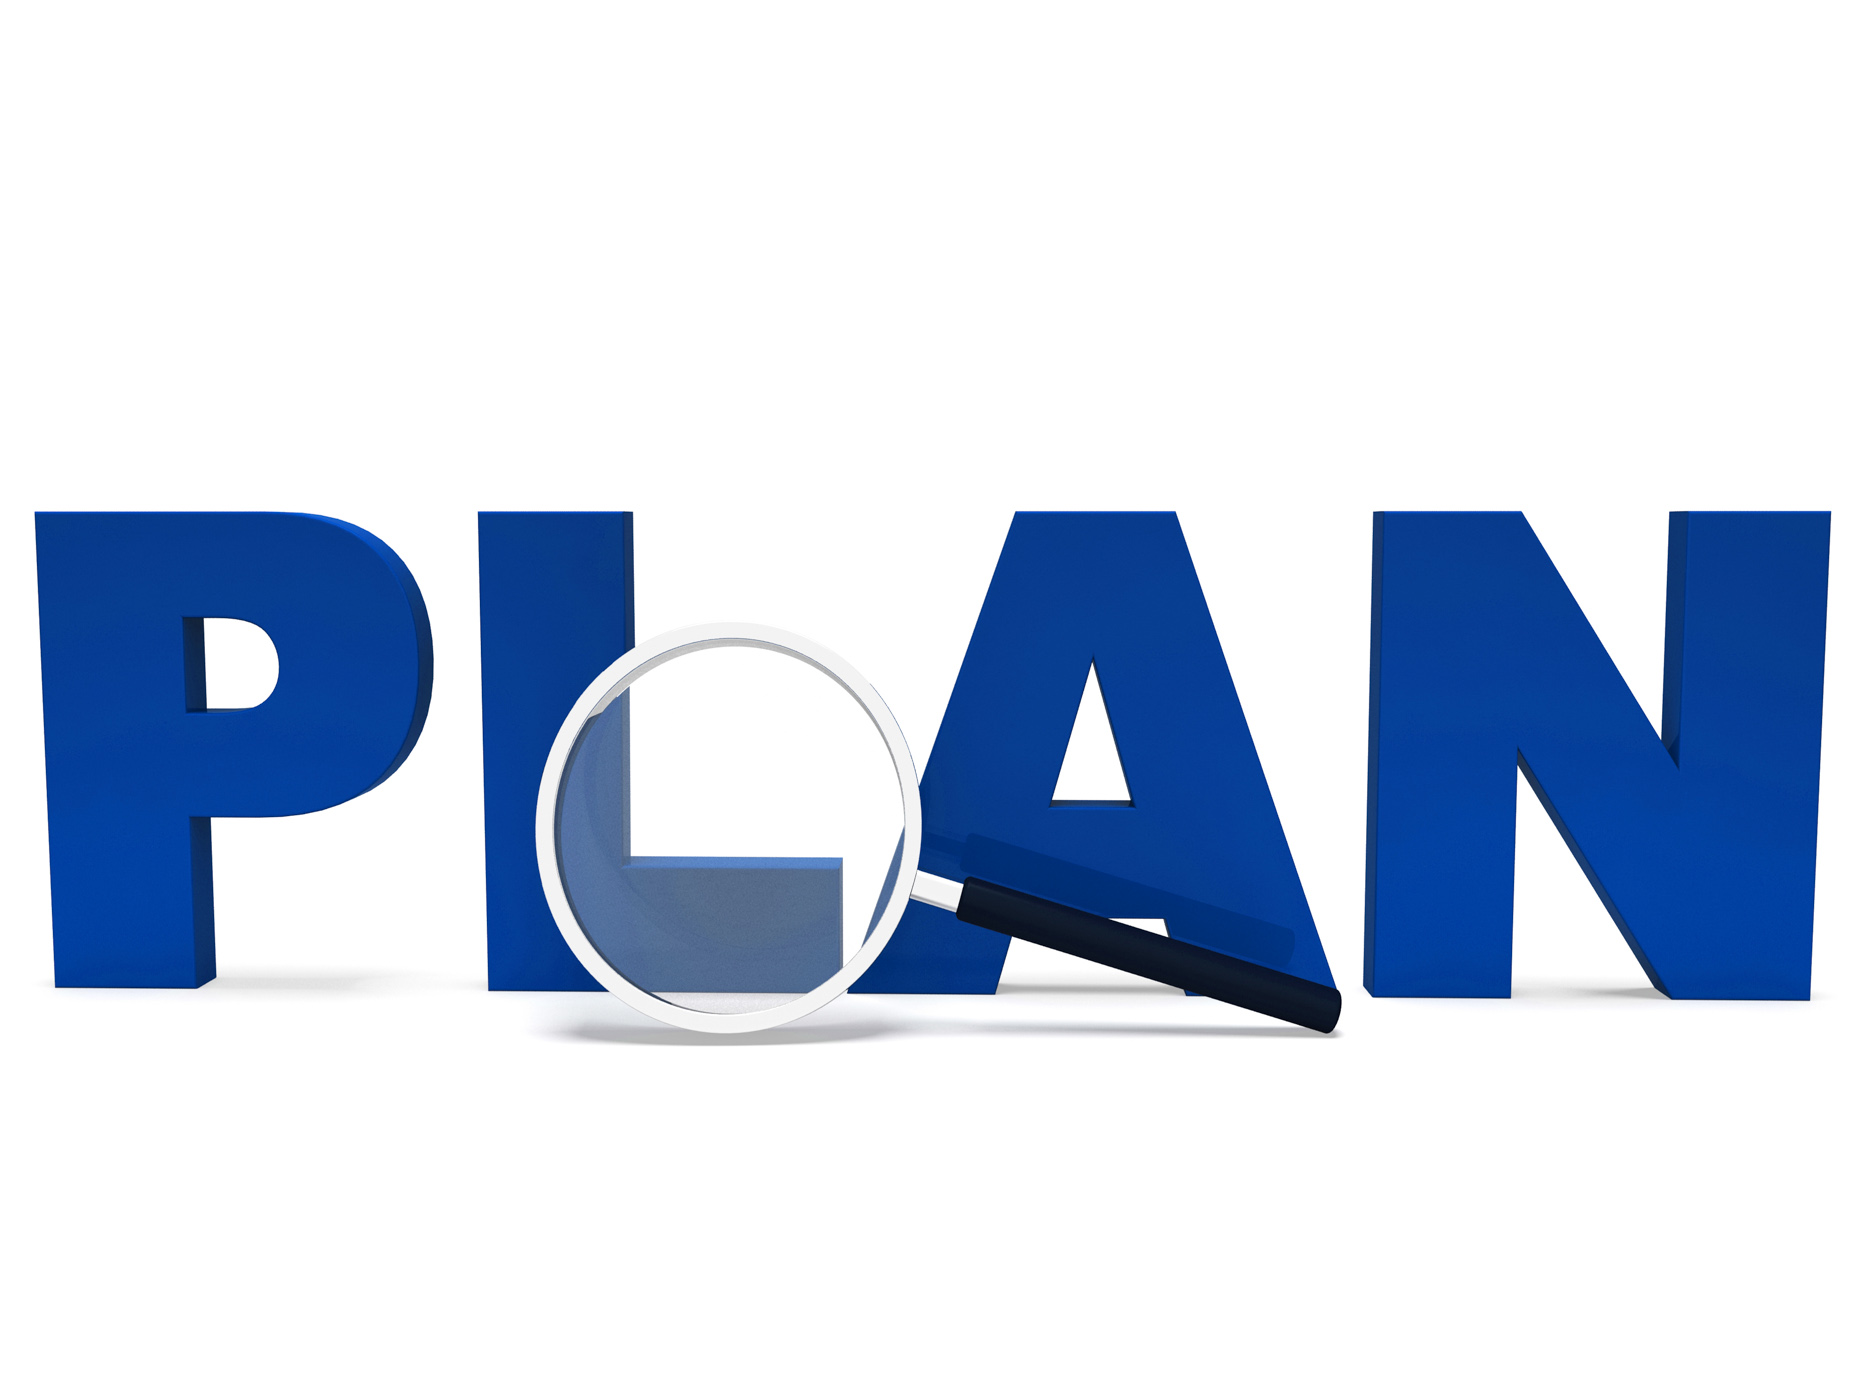 Plan Word Shows Plans Planned Planning And Aims, Aim, Aims, Aspirations, Aspire, HQ Photo